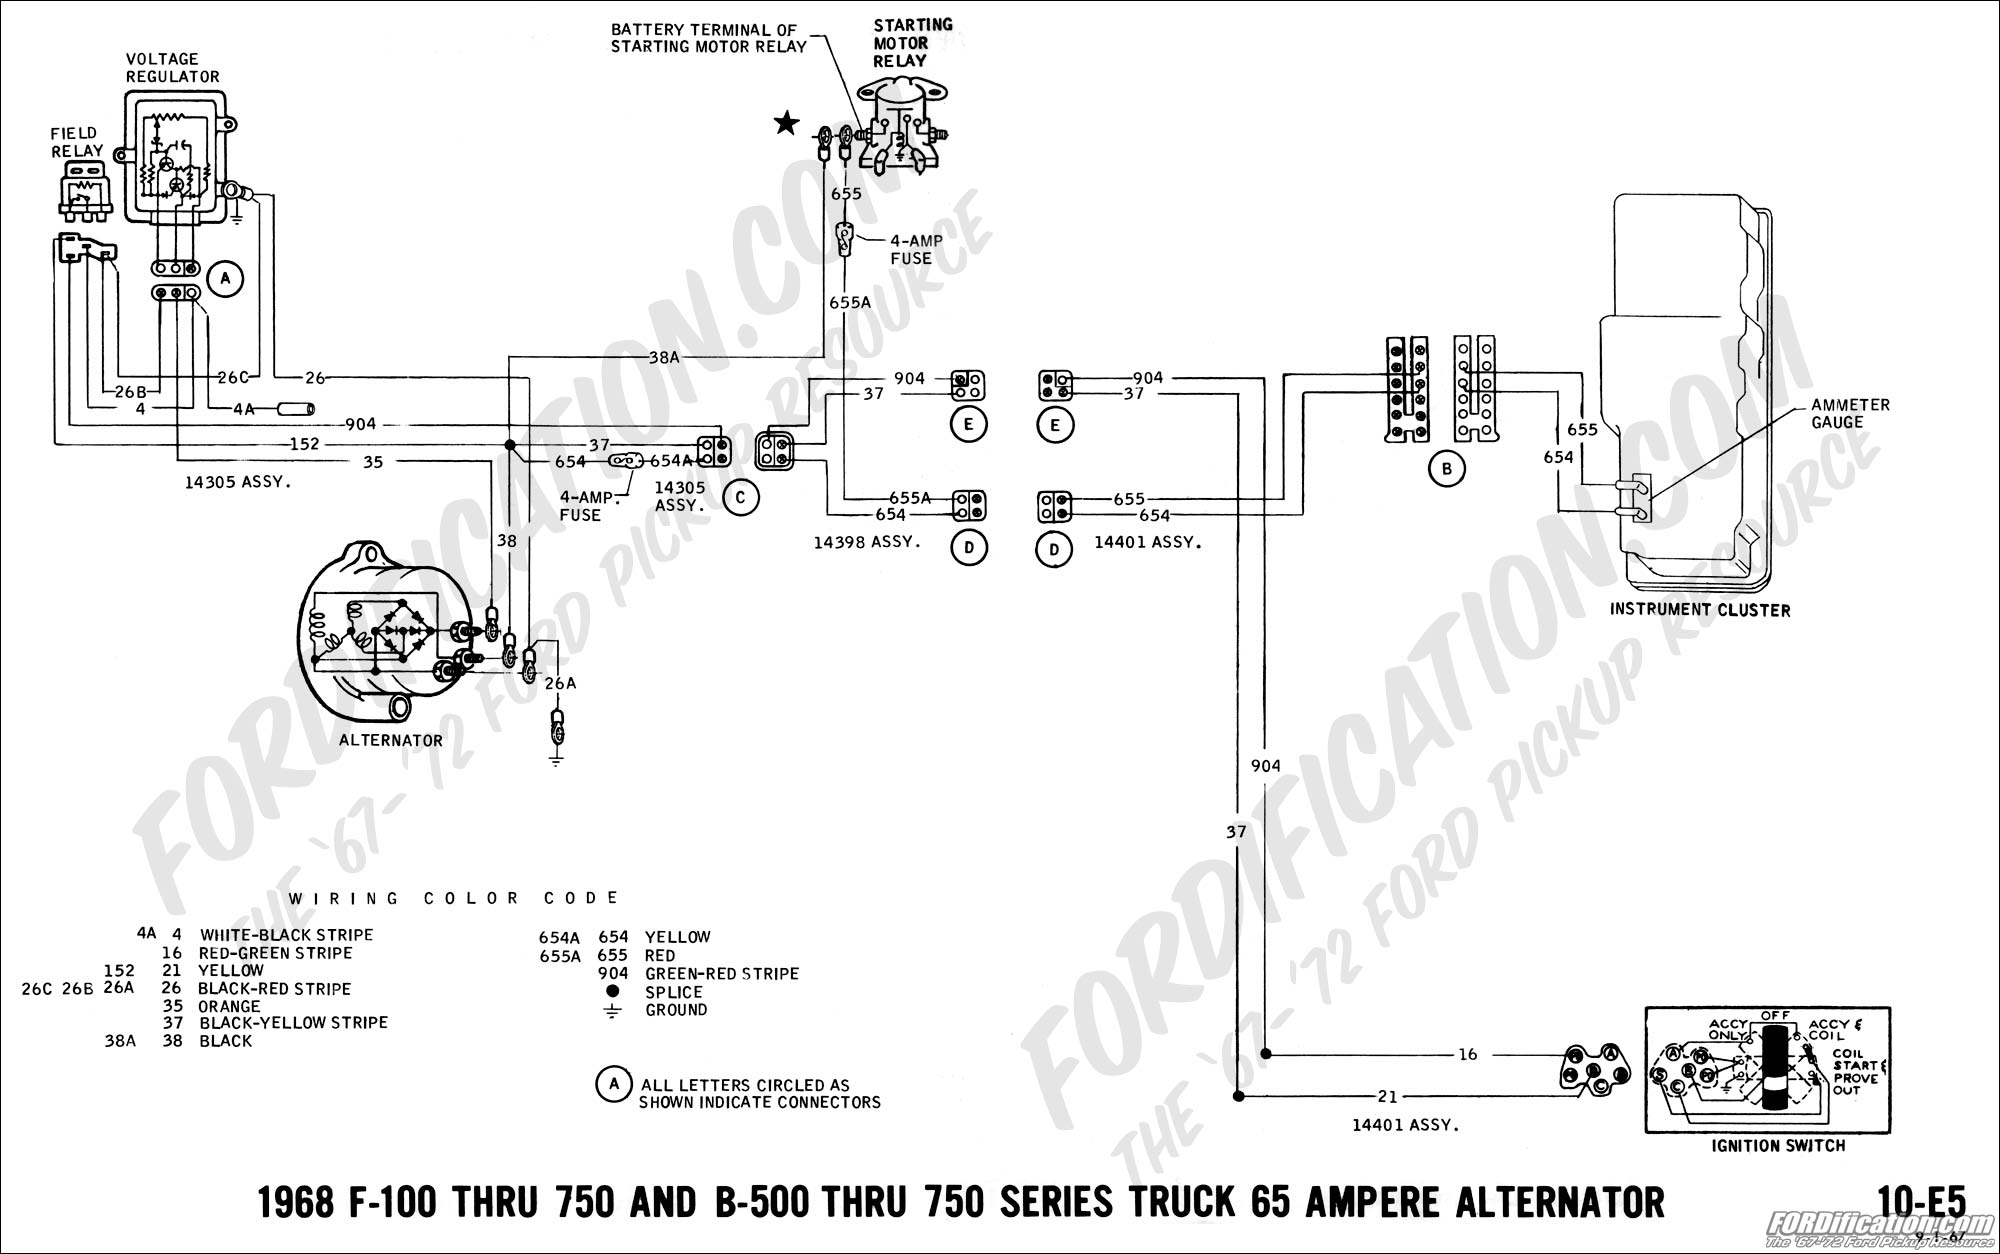 1972 ford regulator wiring diagram wiring diagram article  1972 ford regulator wiring diagram #1